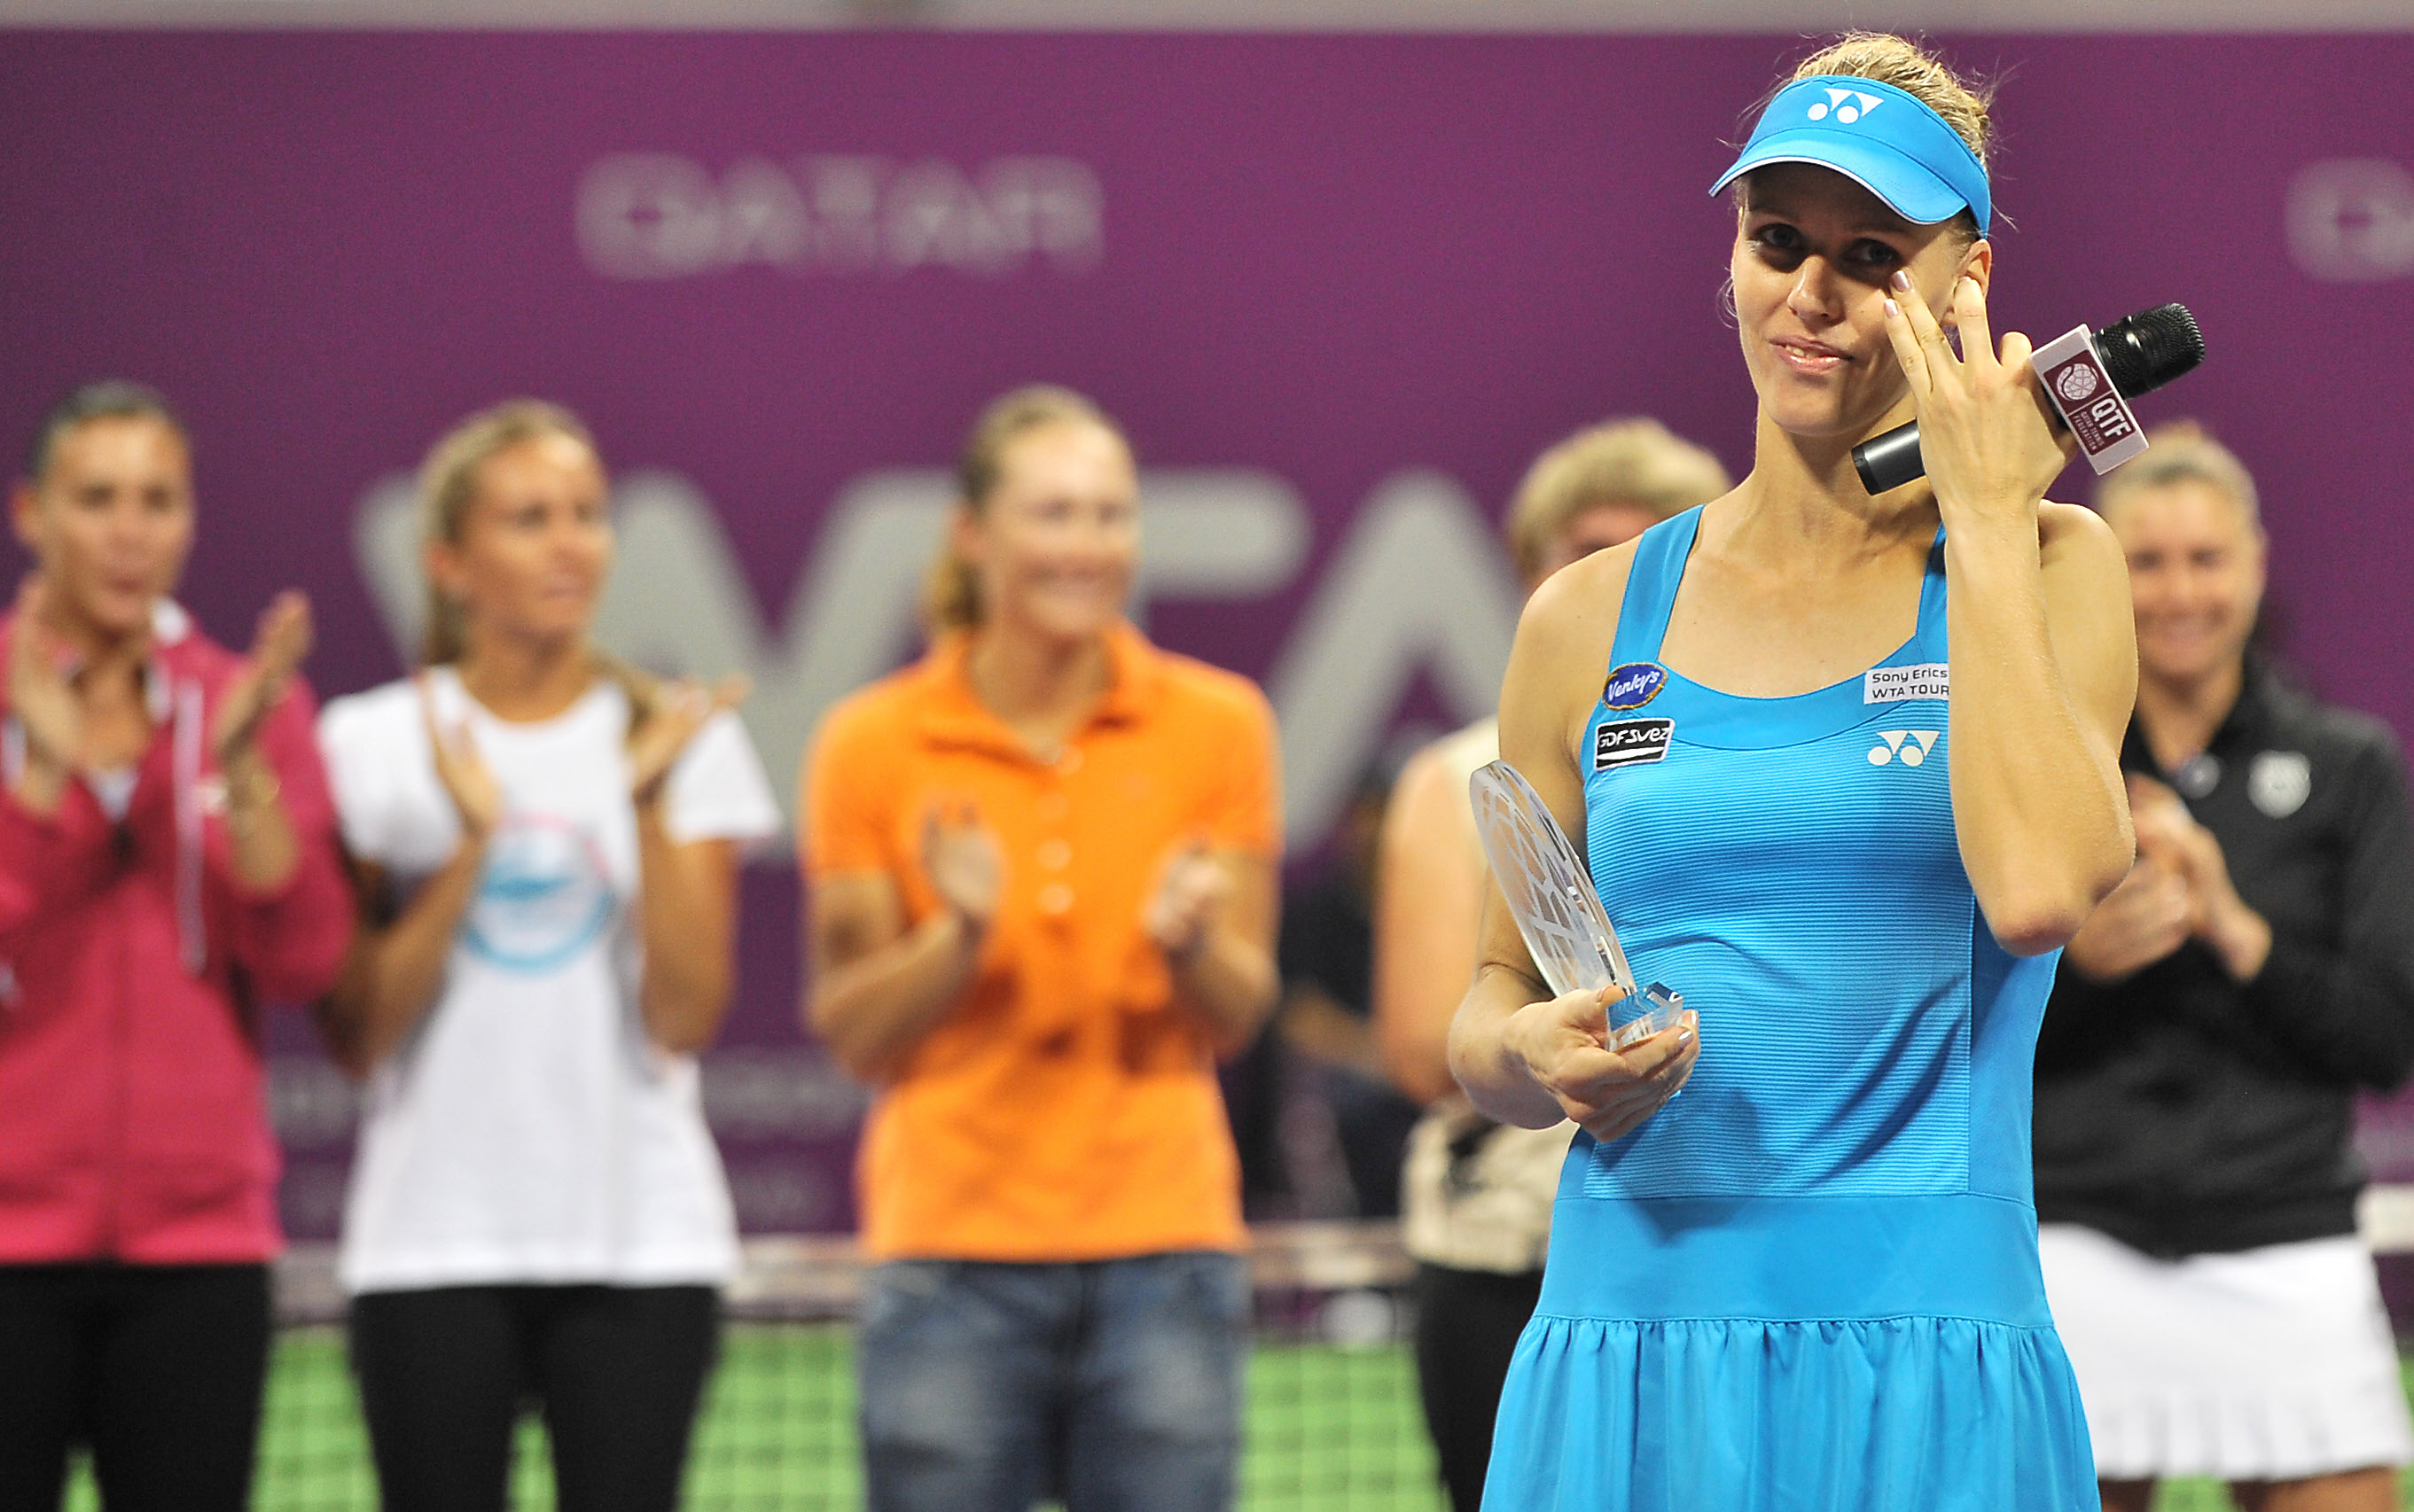 Elena Dementieva stunned everyone by announcing her retirement.